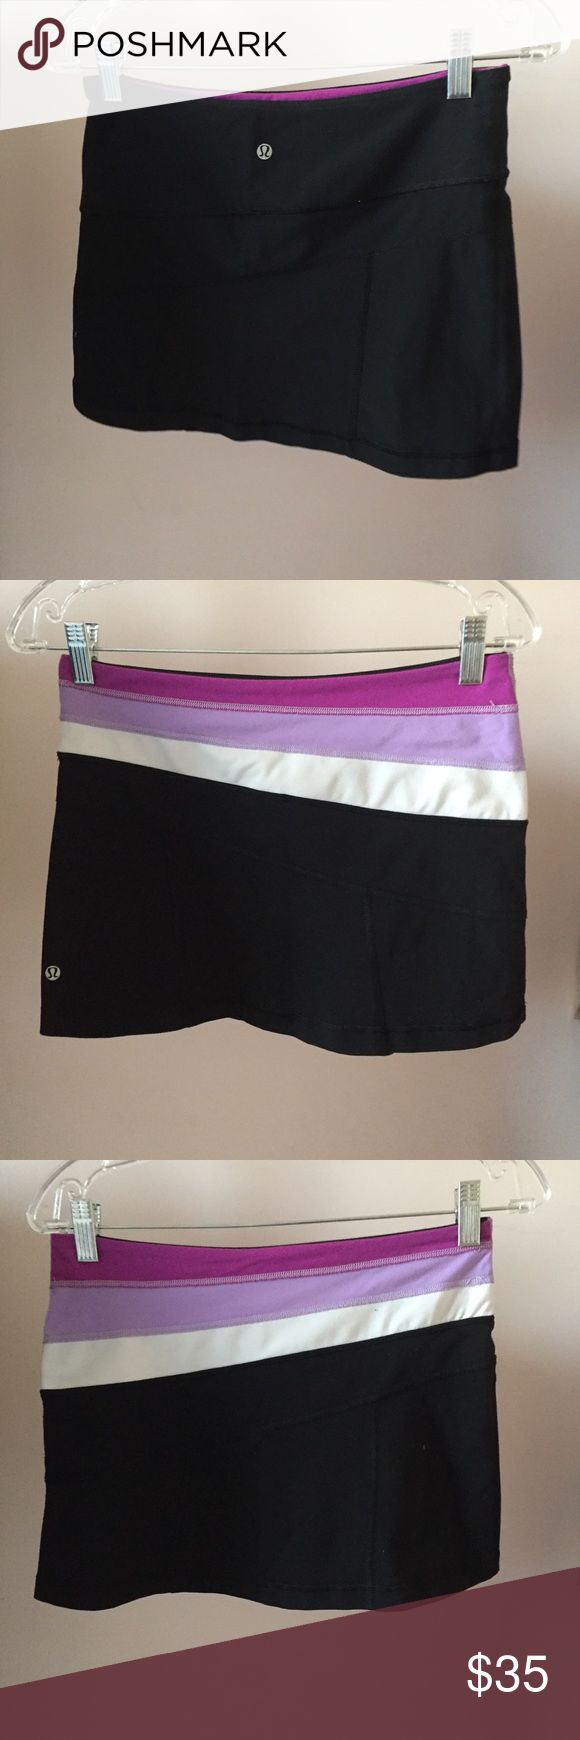 Lululemon Reversible Mini Skirt Brand: Lululemon Condition: Never worn Size: 4 Extra Details: No lining. One side is solid black, the other is black with purple. Please look at pictures for better reference. lululemon athletica Skirts Mini